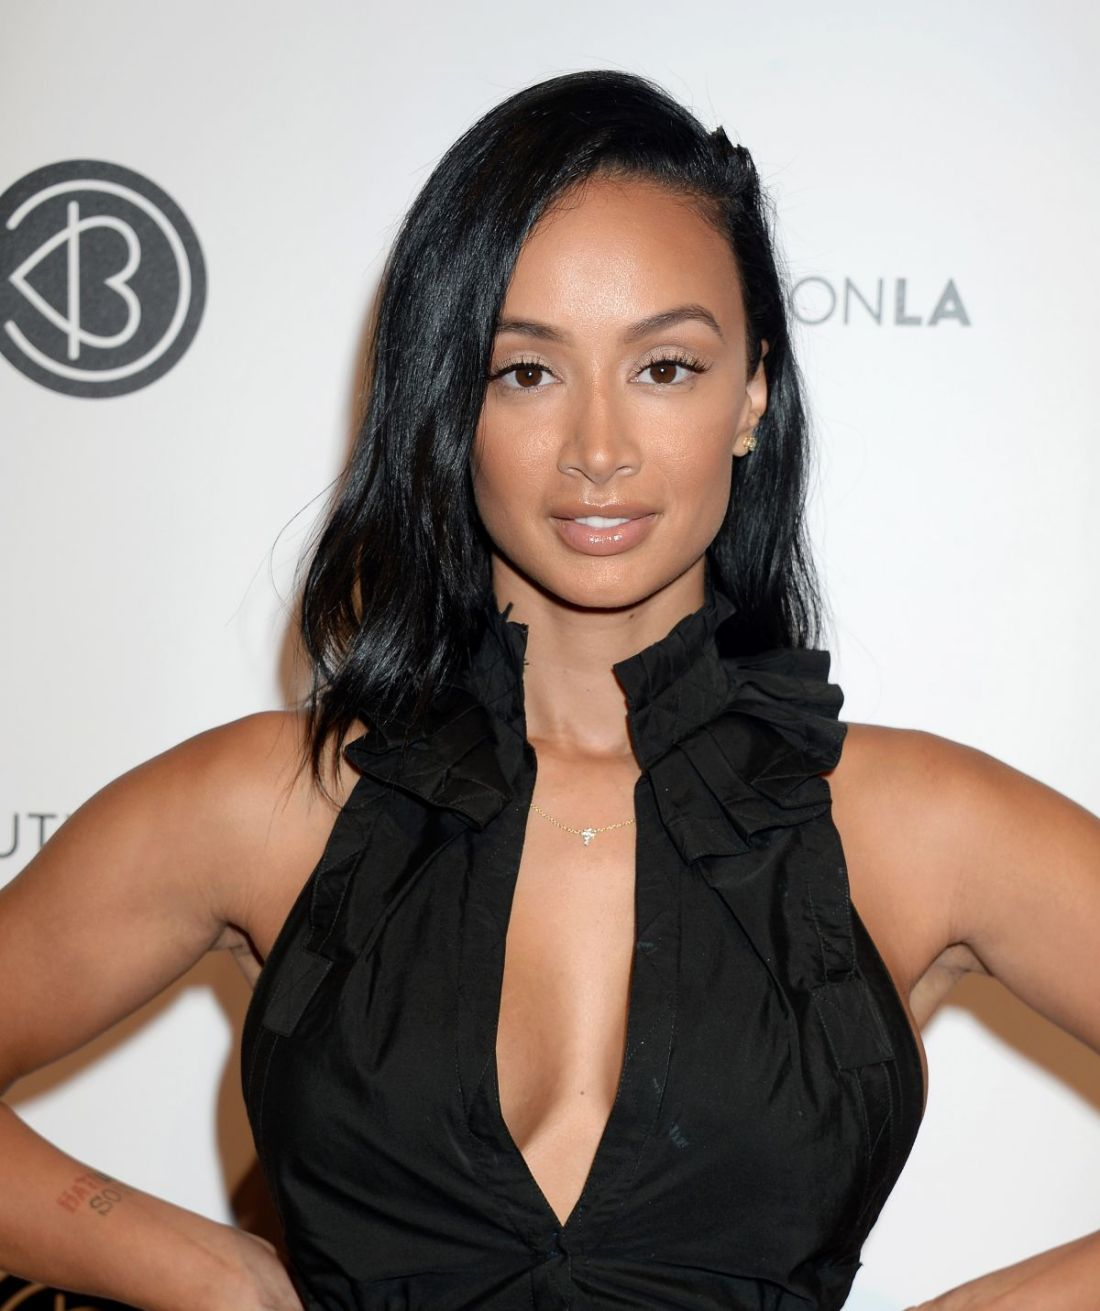 DRAYA MICHELE CULTURE CREEPR